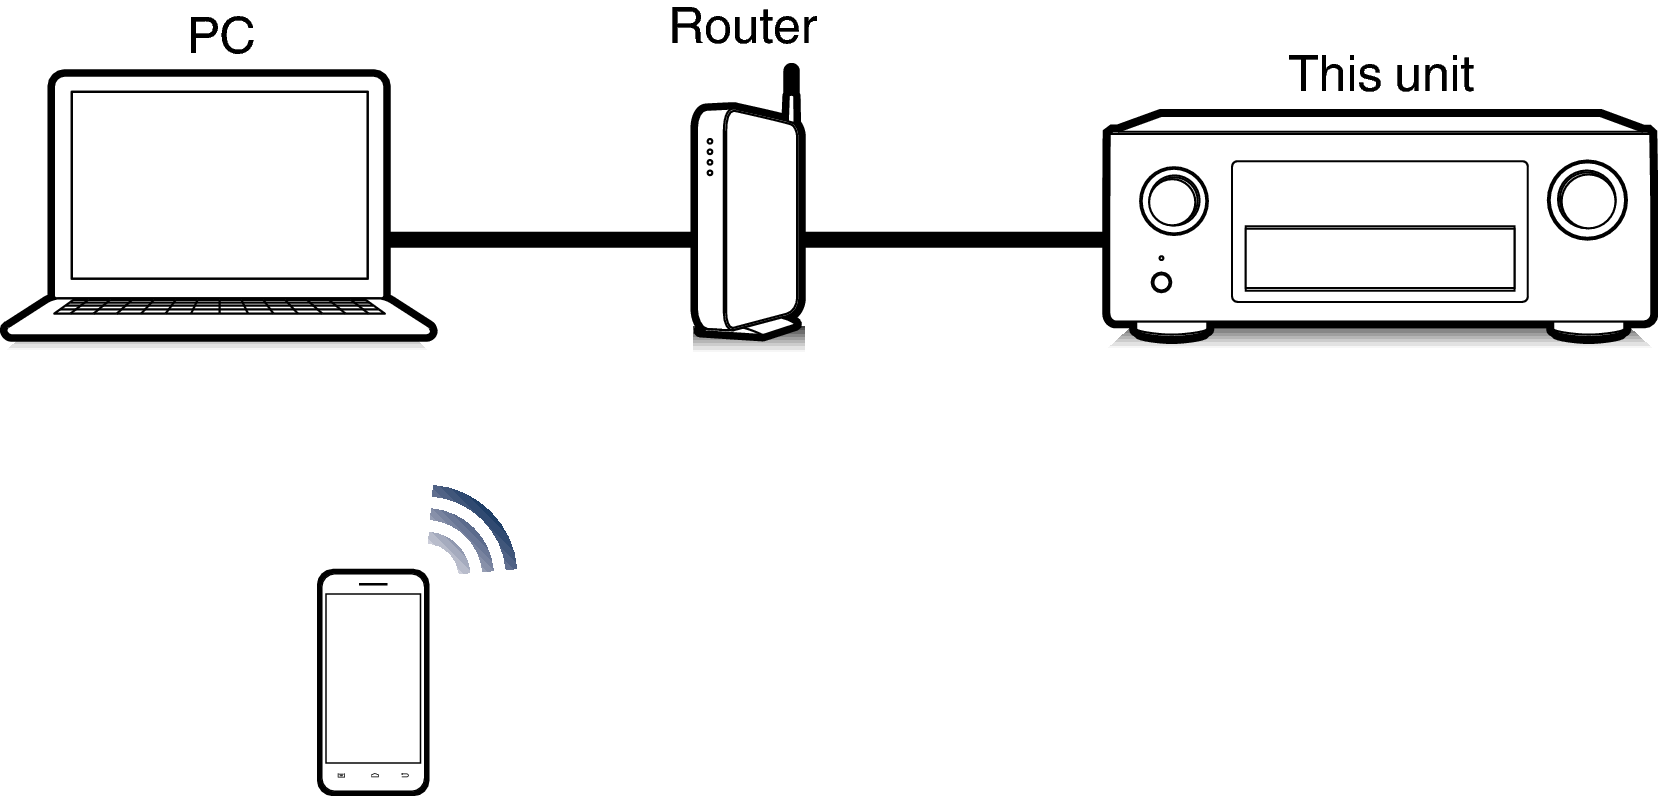 AirPlay function AVR-X4400H